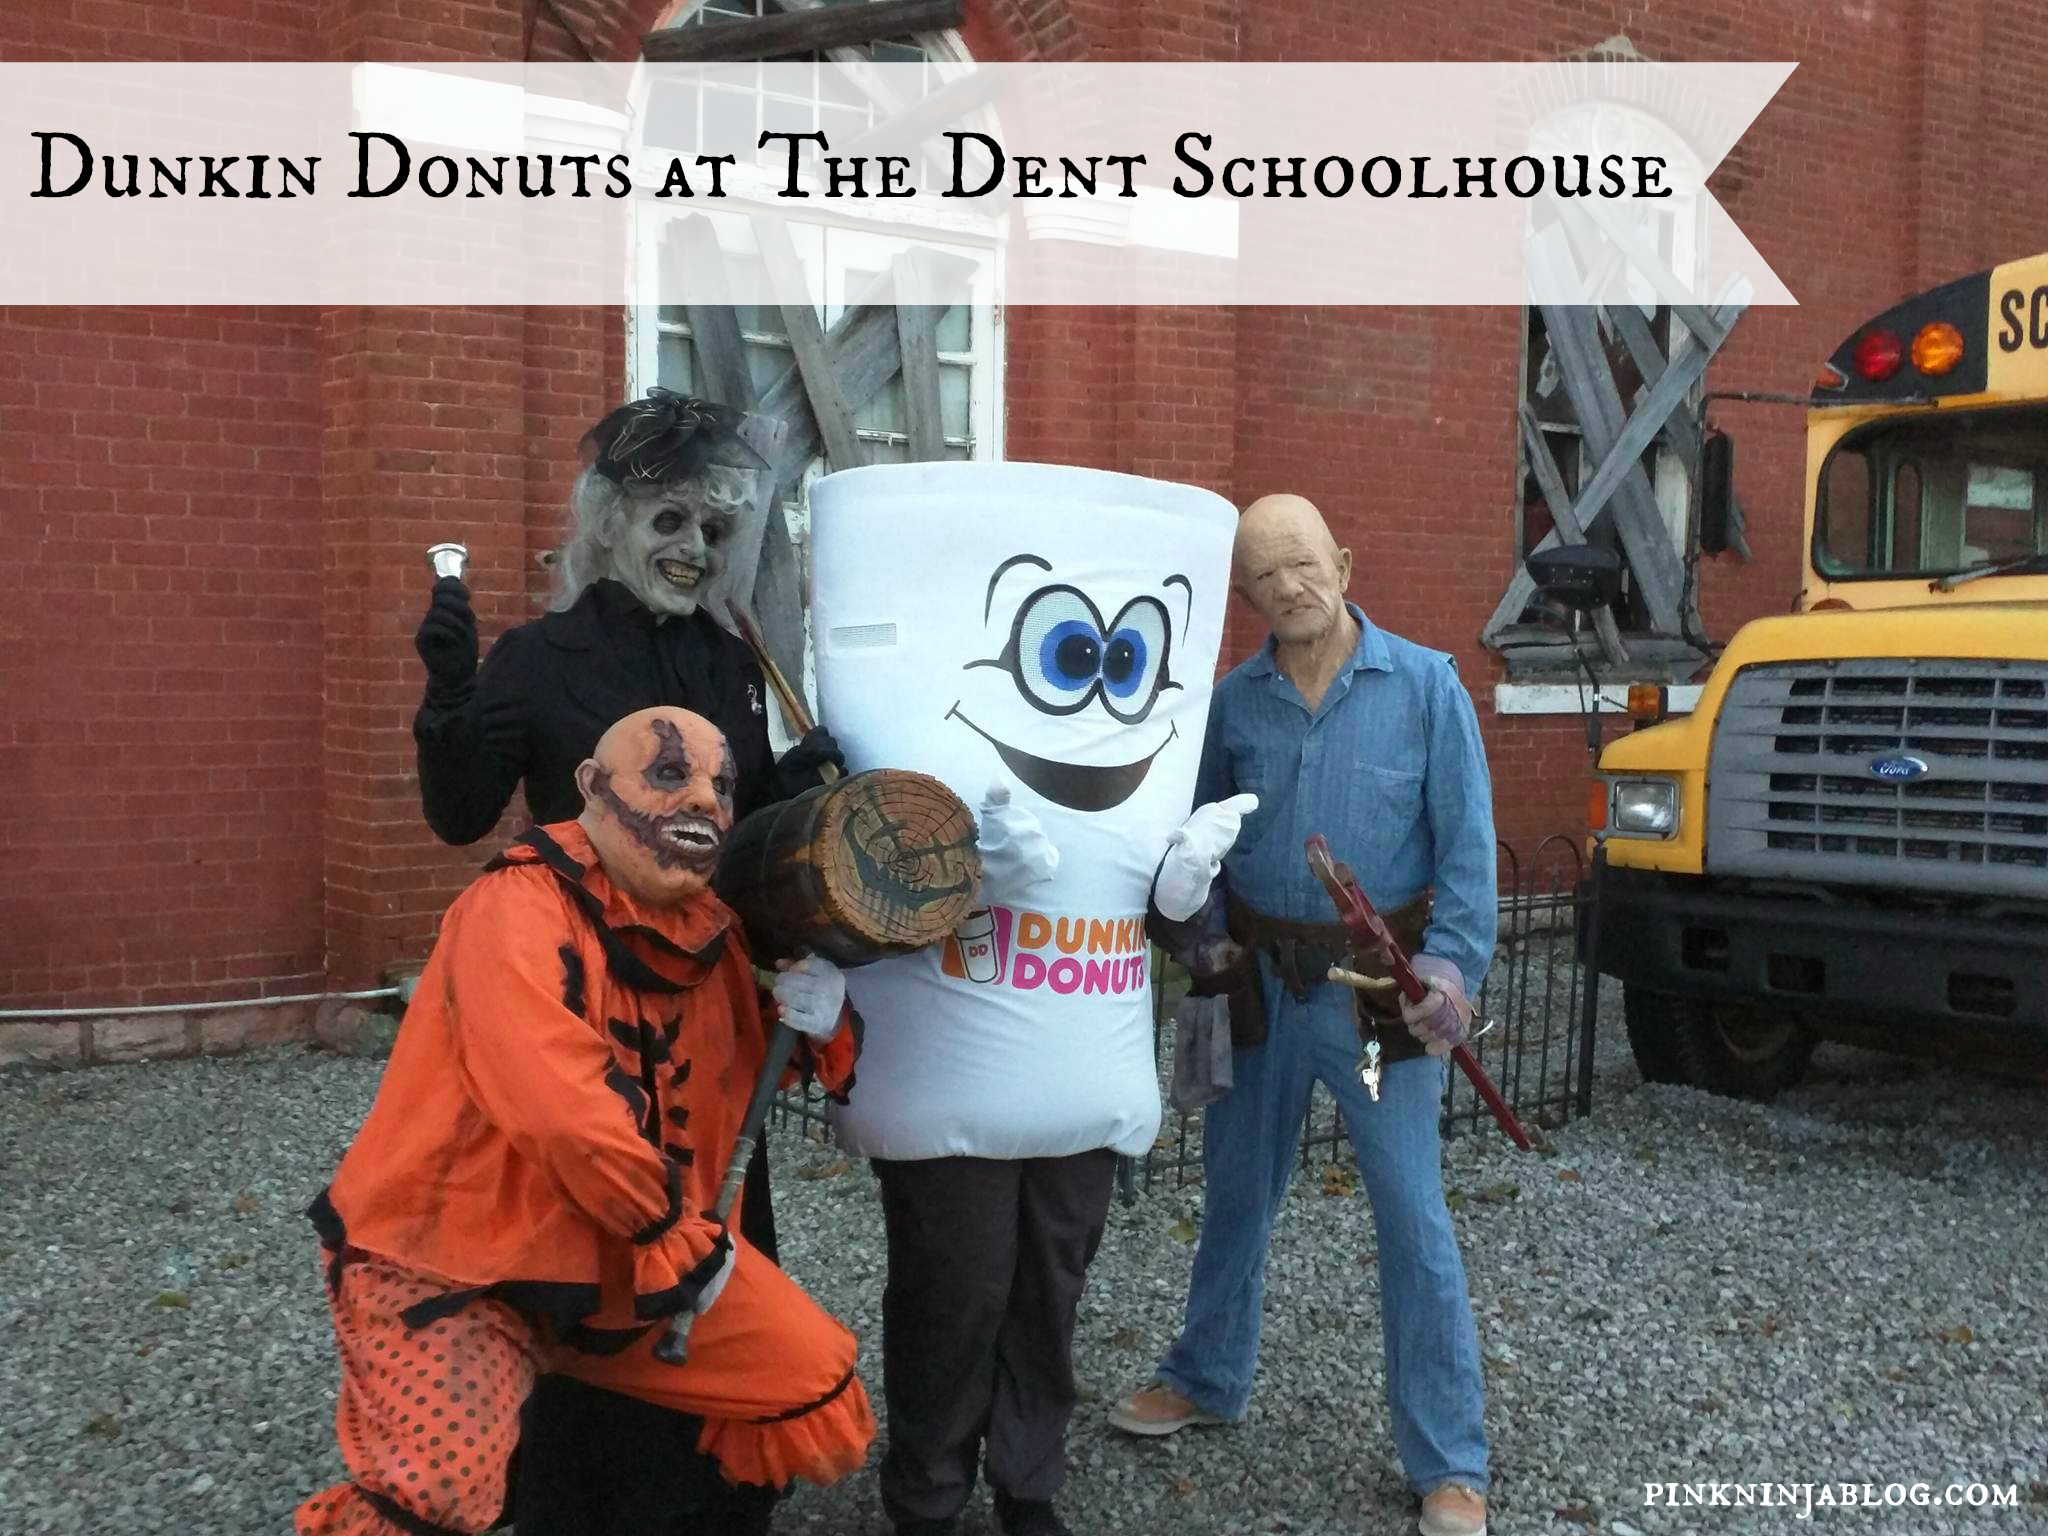 Dunkin' Donuts at The Dent Schoolhouse  #ddcincy  #dentschoolhouse